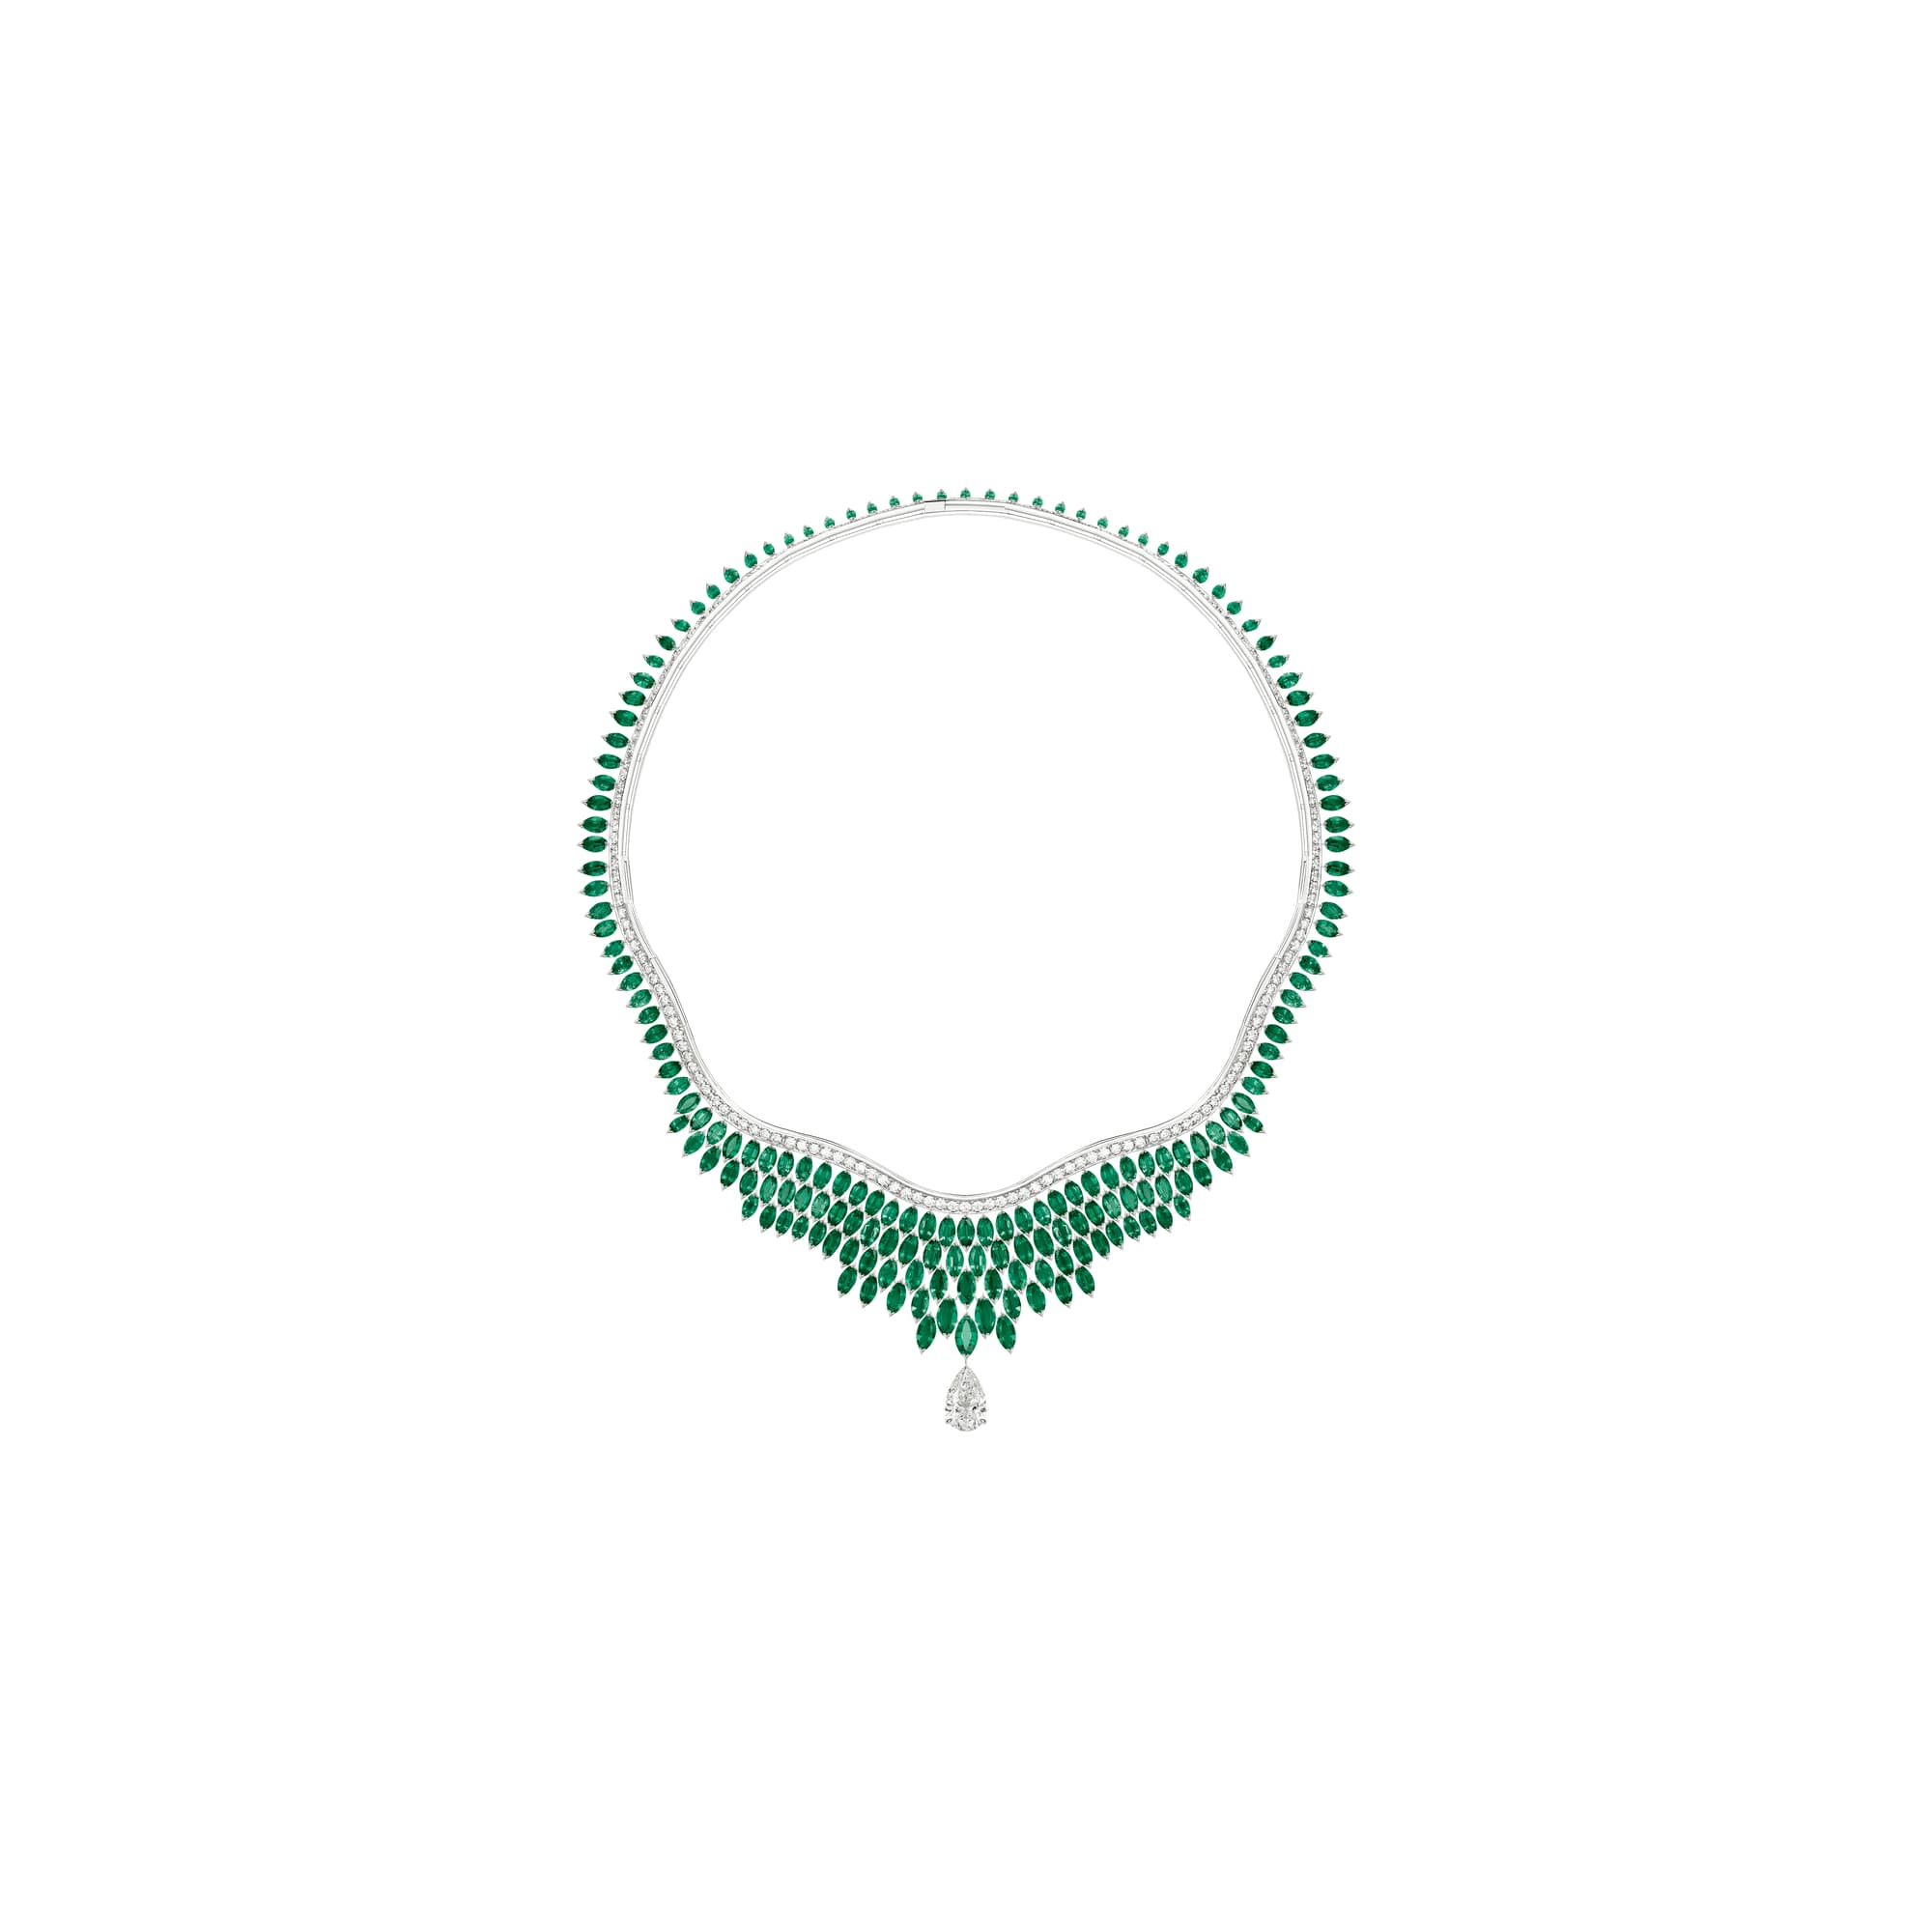 high jewellery diamond necklace set with emeralds